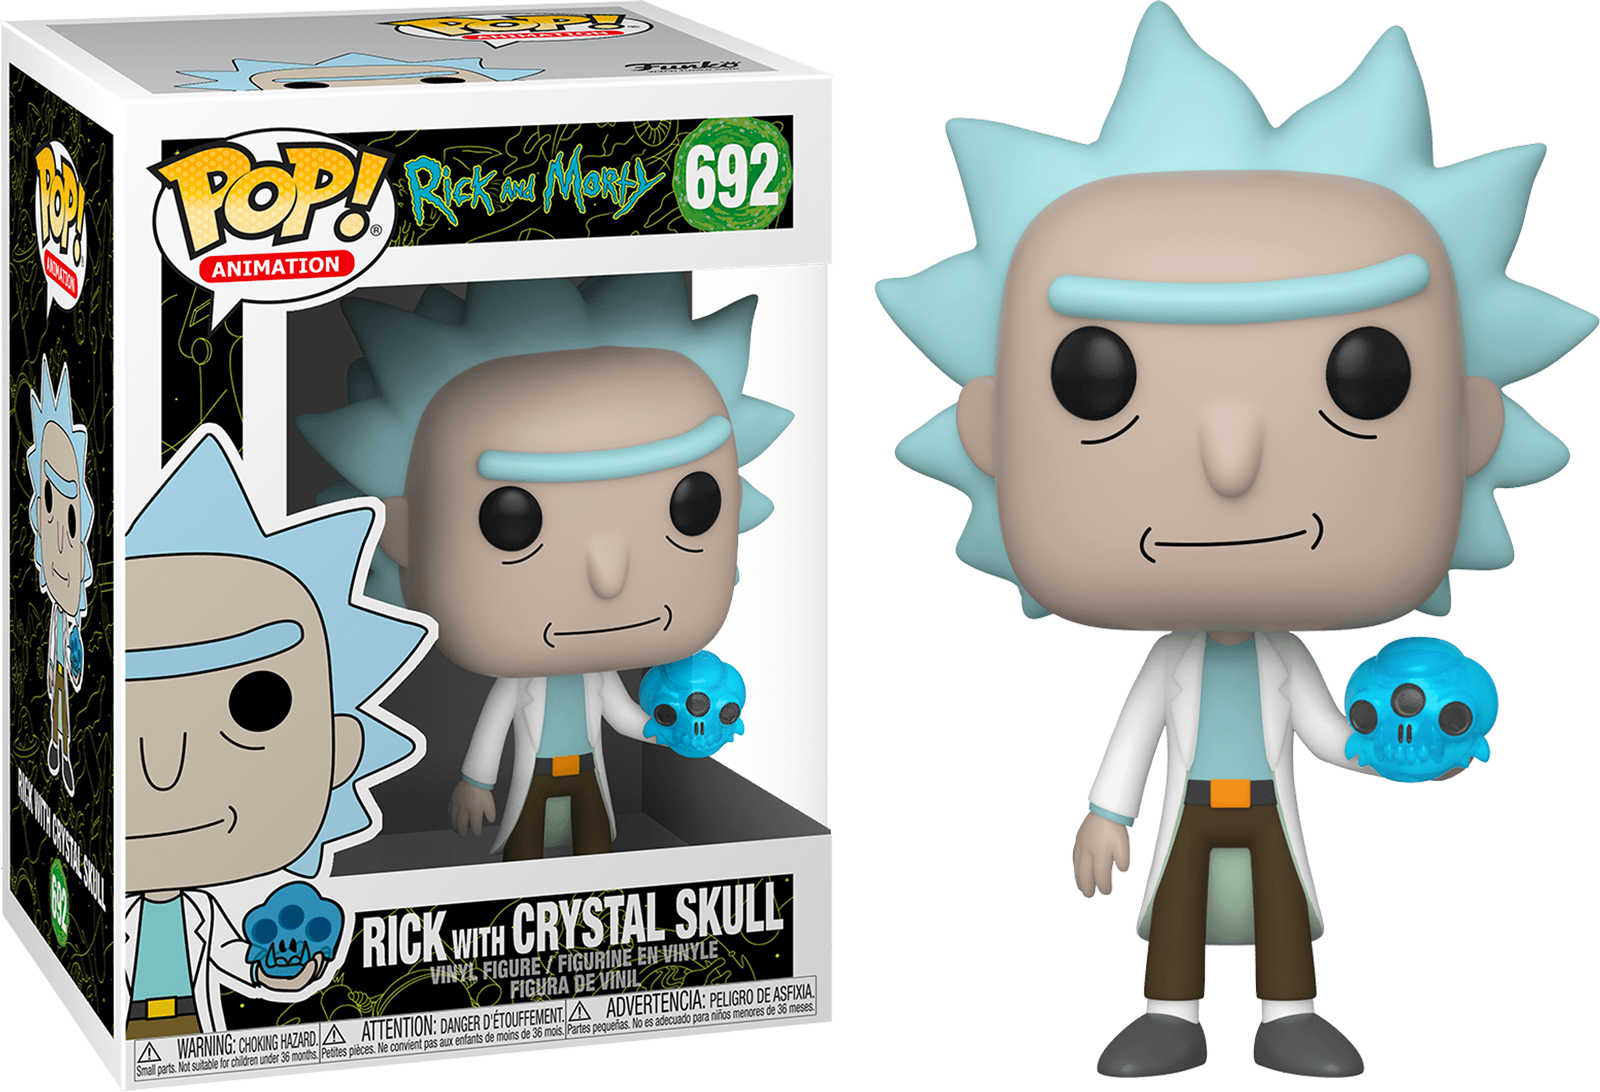 Funko Pop Rick And Morty Rick With Crystal Skull 692 The Amazing Collectables For those treasure demons with no weaknesses, use items and abilities that increase your critical hit chance, or, if you have the tower confidant, use down shot to knock them down. funko pop rick and morty rick with crystal skull 692